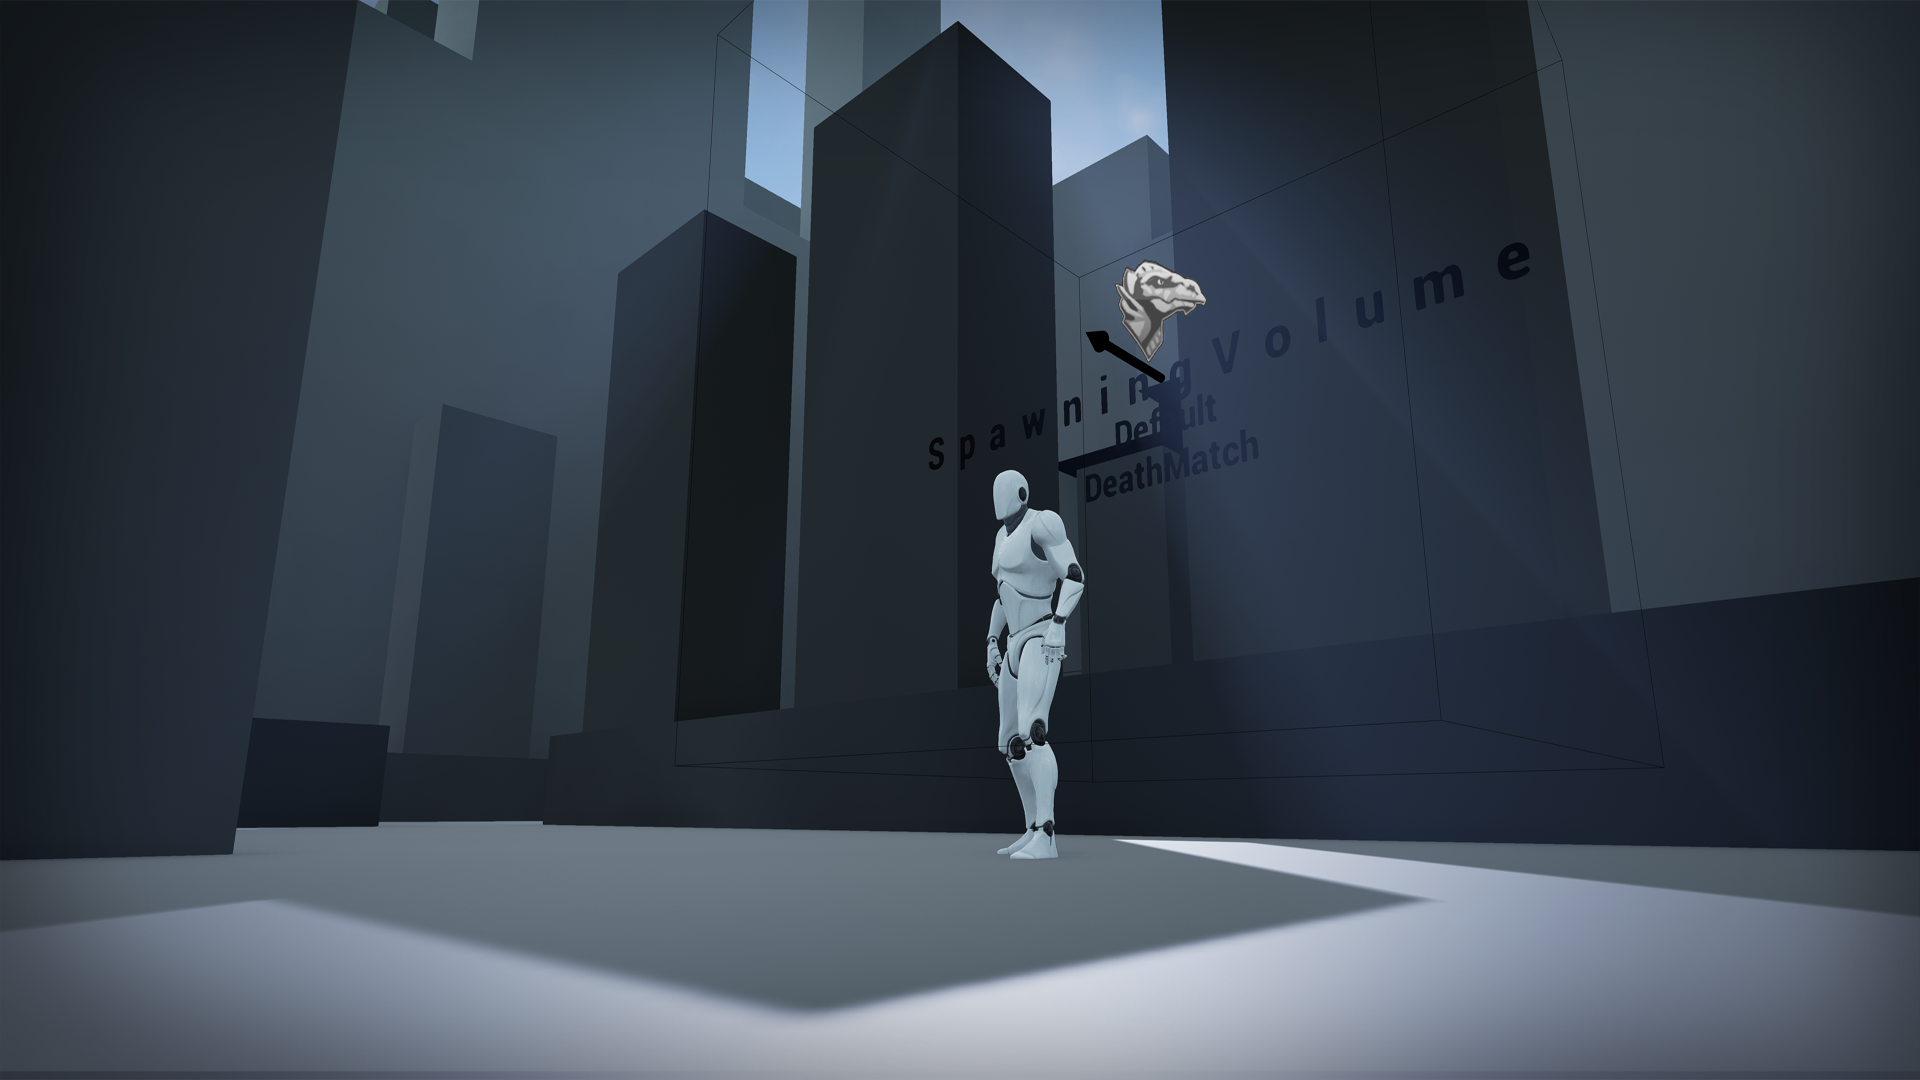 BP Spawning Volumes by Matthew Boatswain